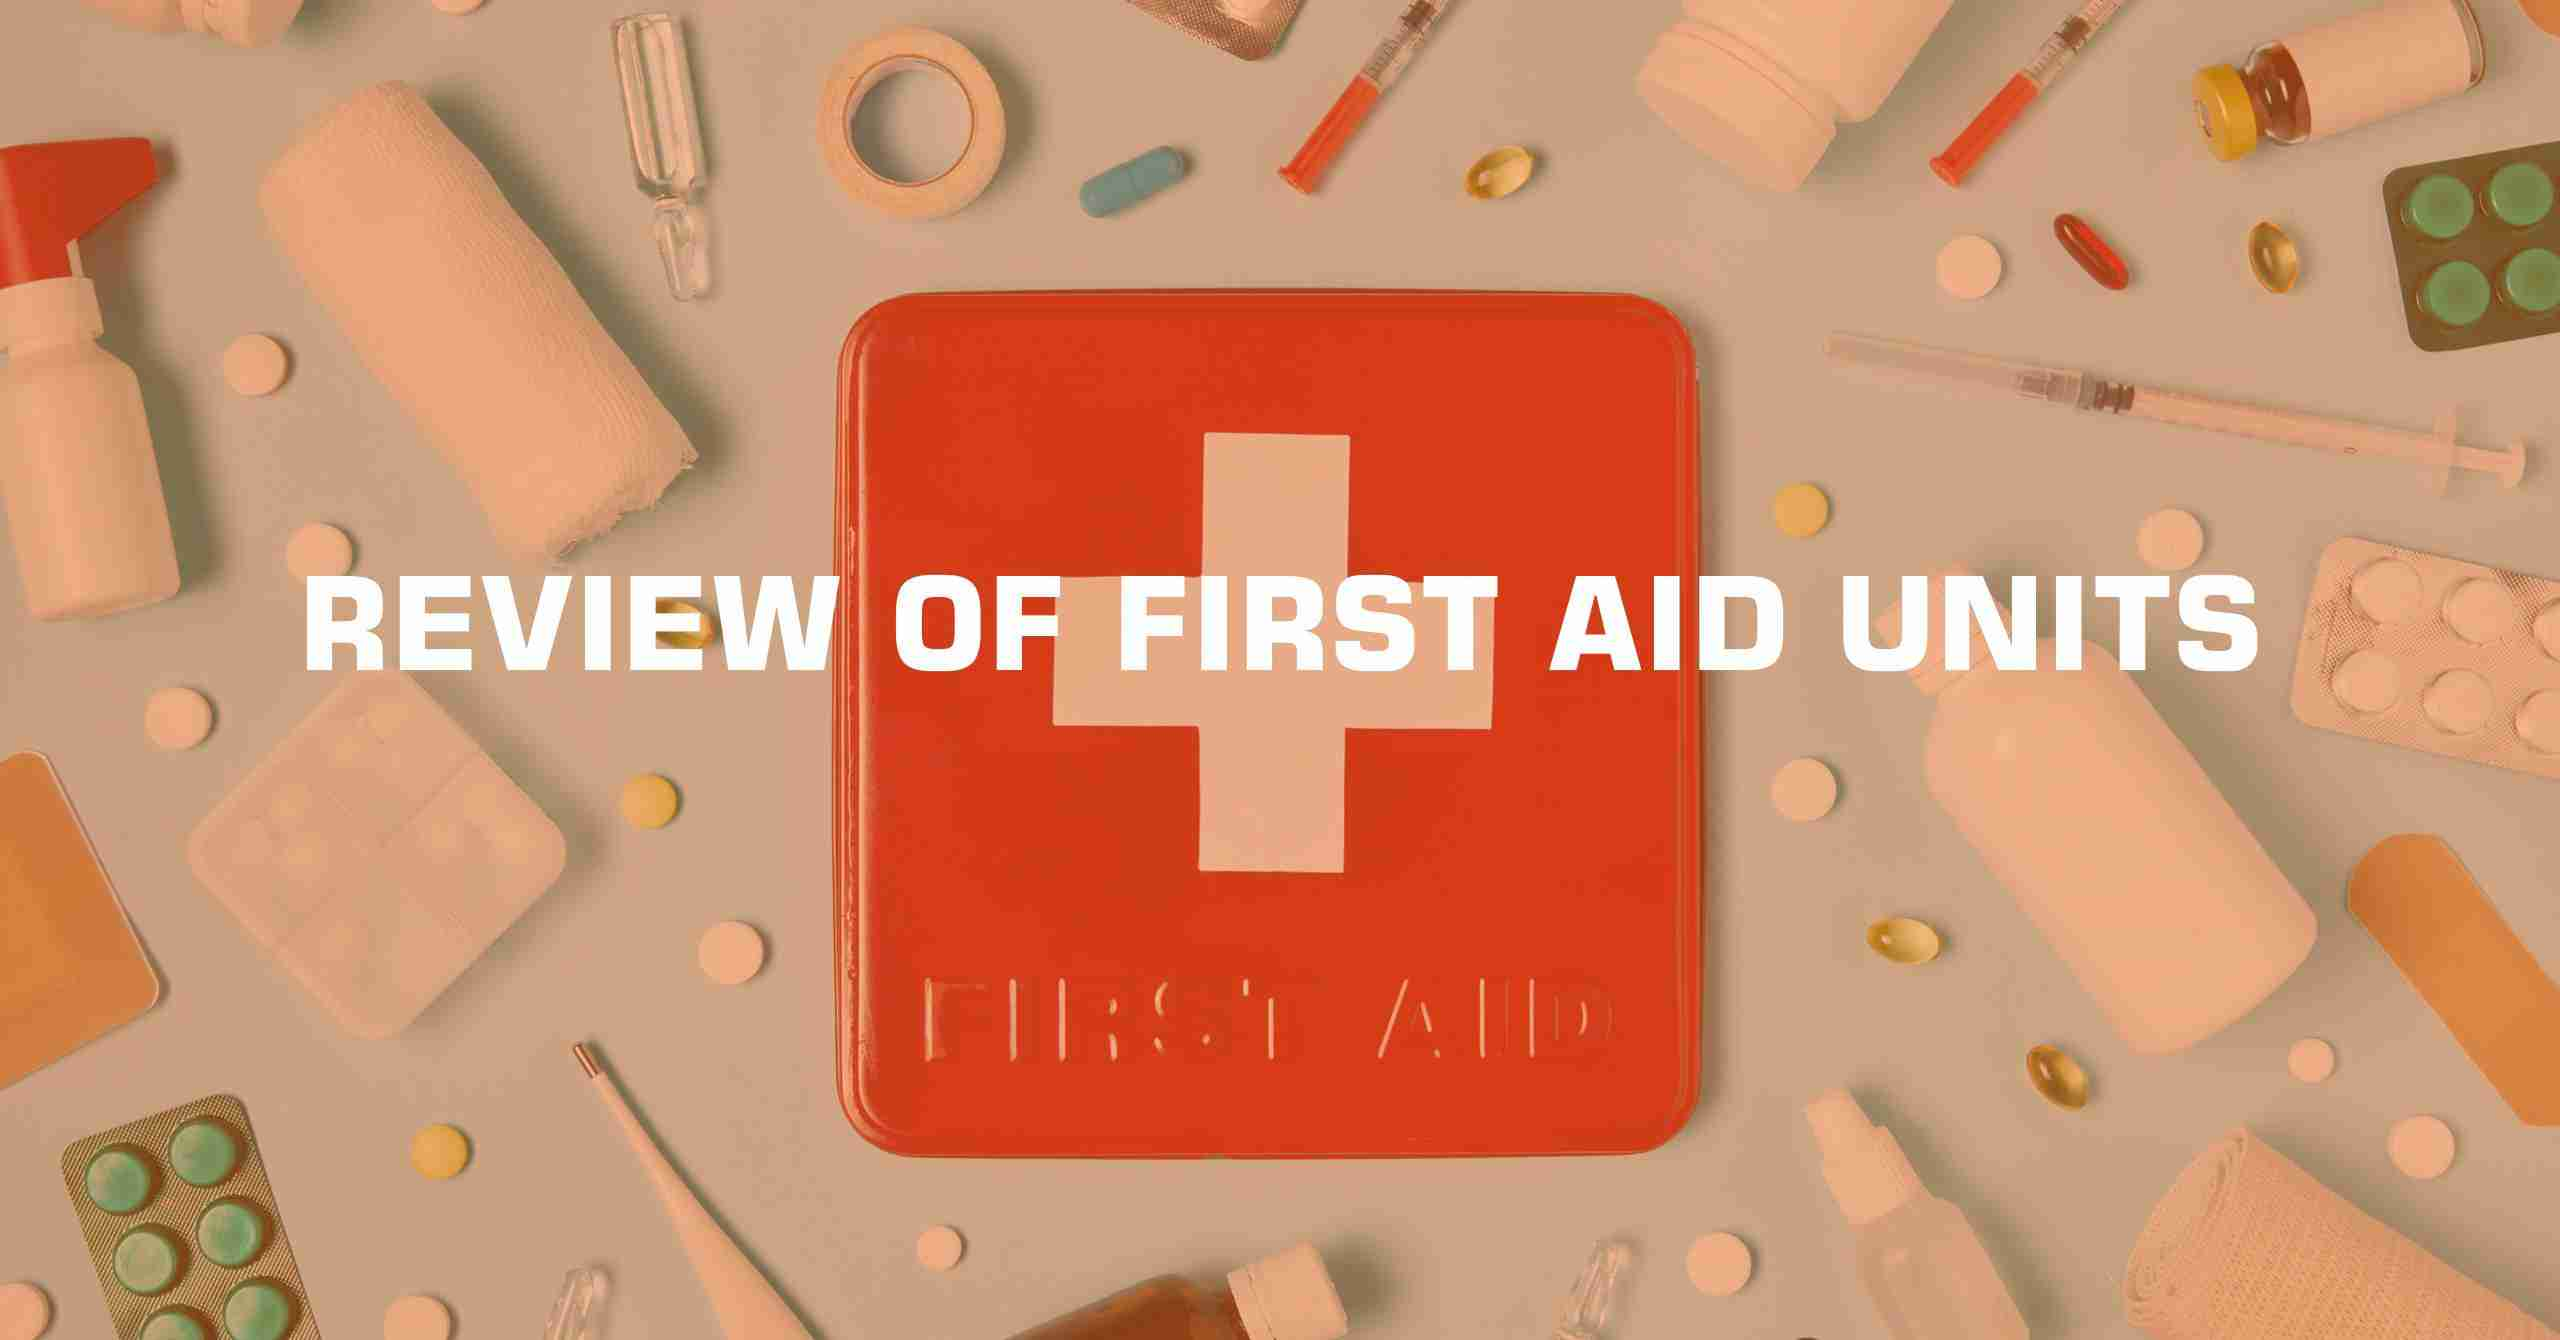 REVIEW OF FIRST AID UNITS min scaled